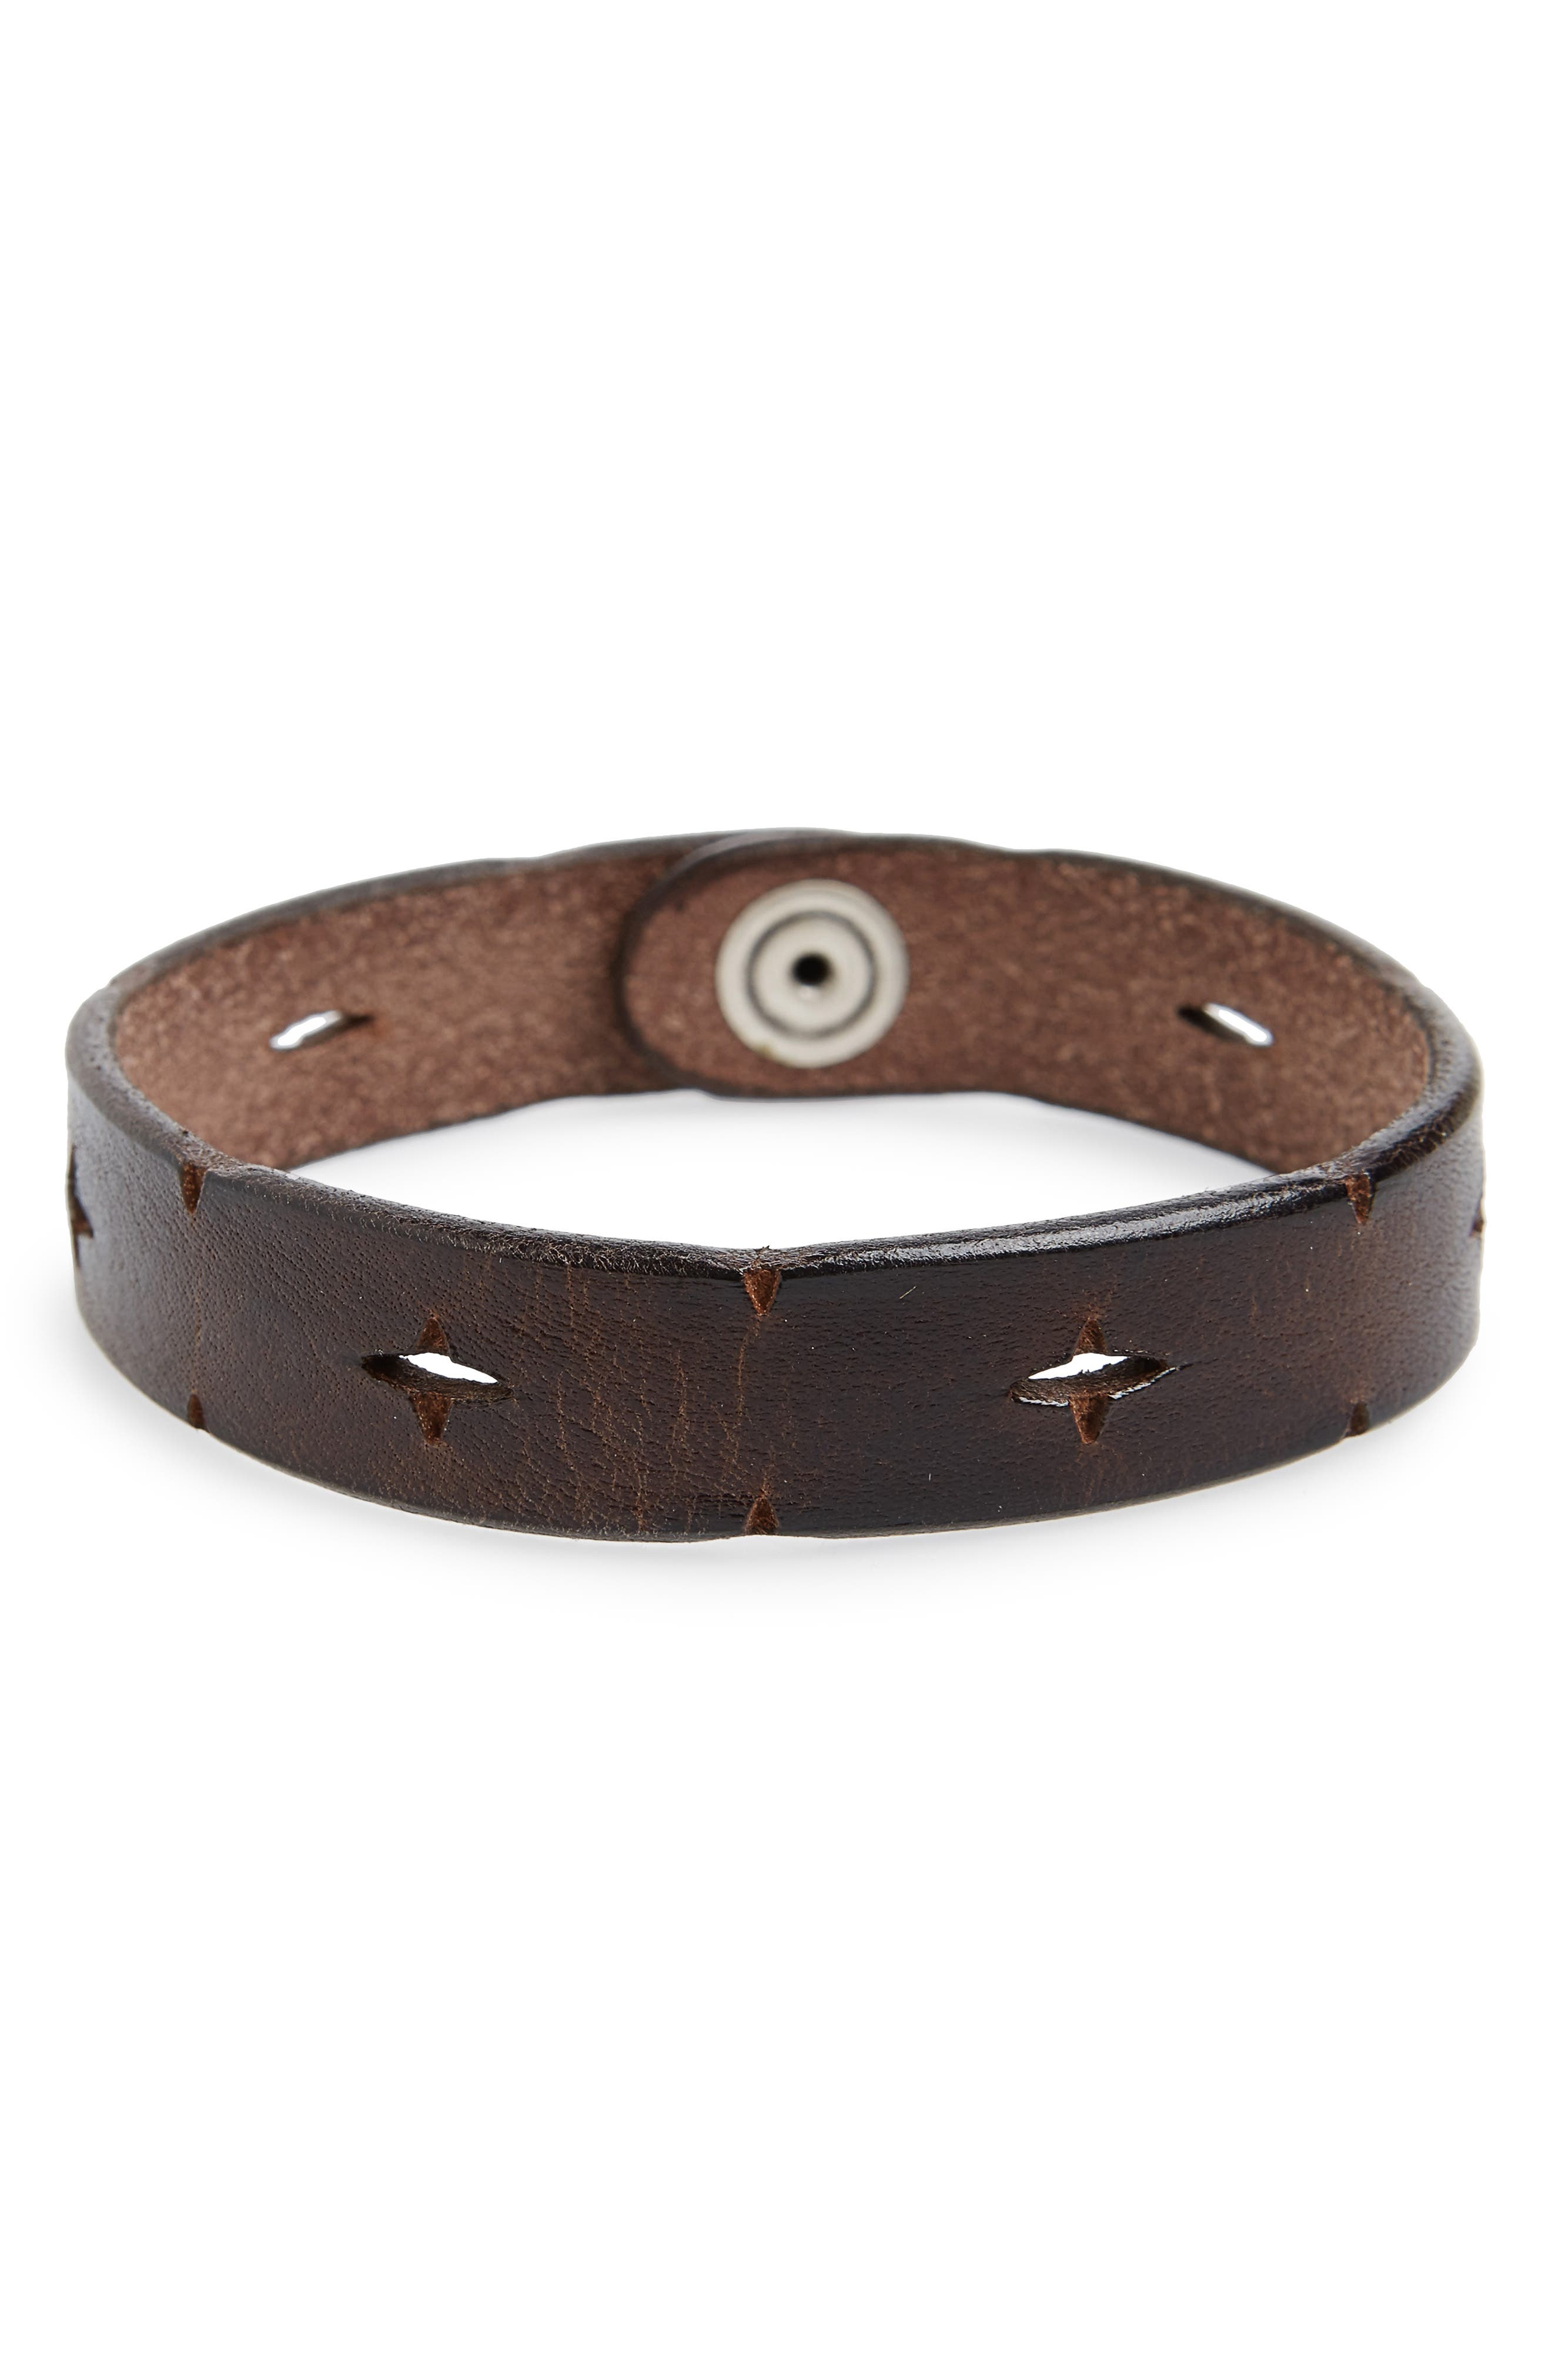 Wax Leather Bracelet,                             Main thumbnail 1, color,                             T. Moro